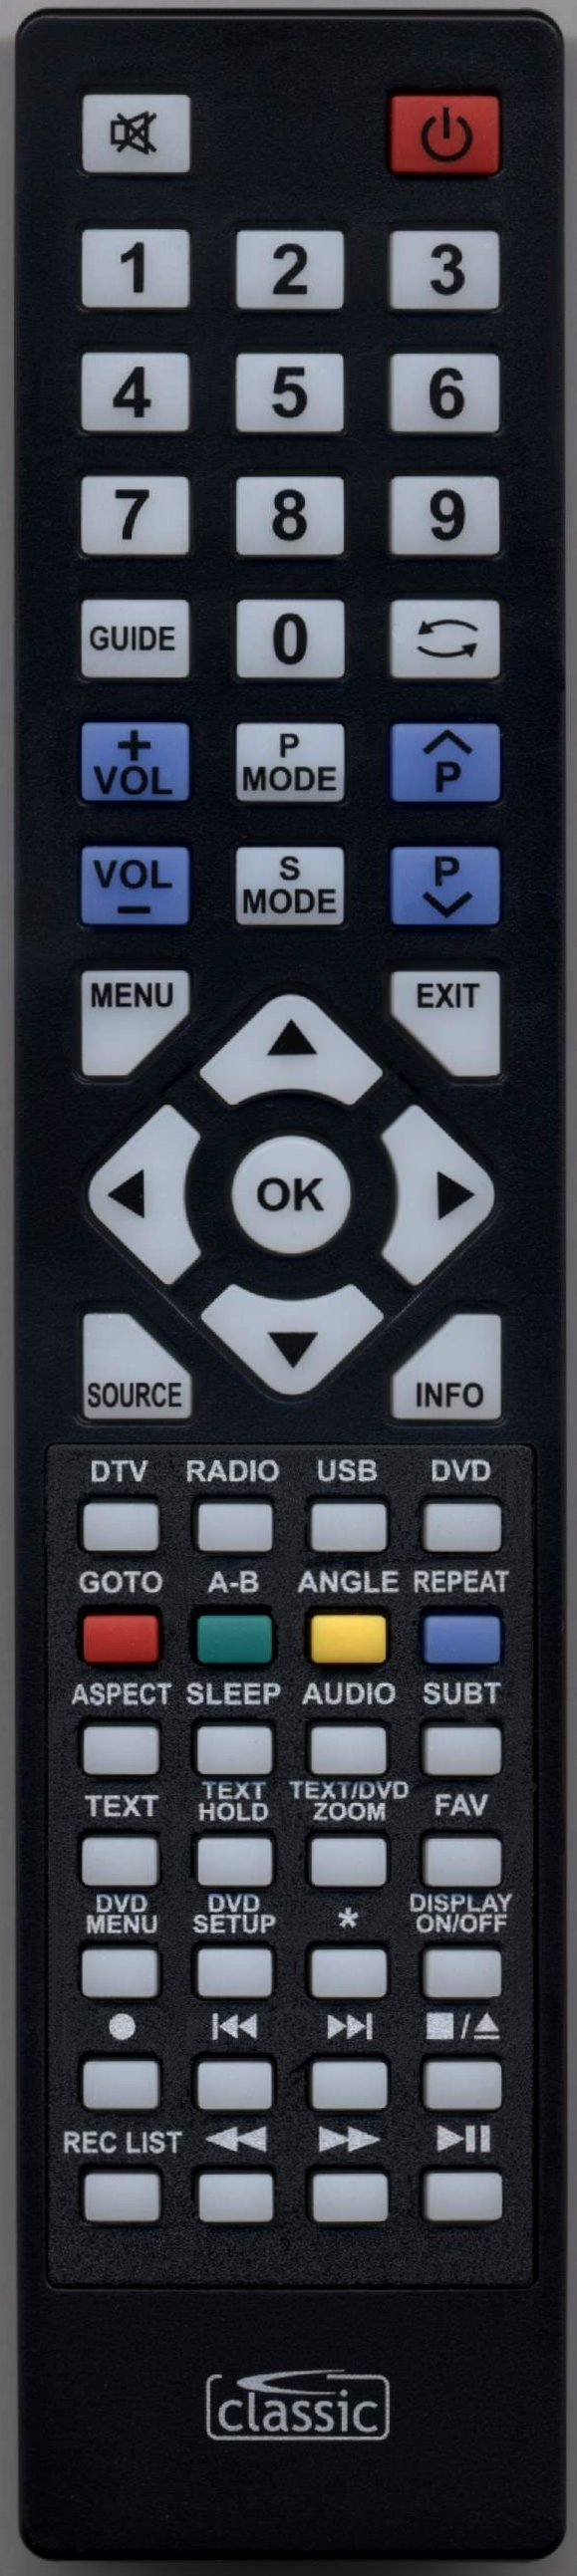 Blaupunkt 24/147I-GB-3B-FHBKUP-UK Remote Control Alternative